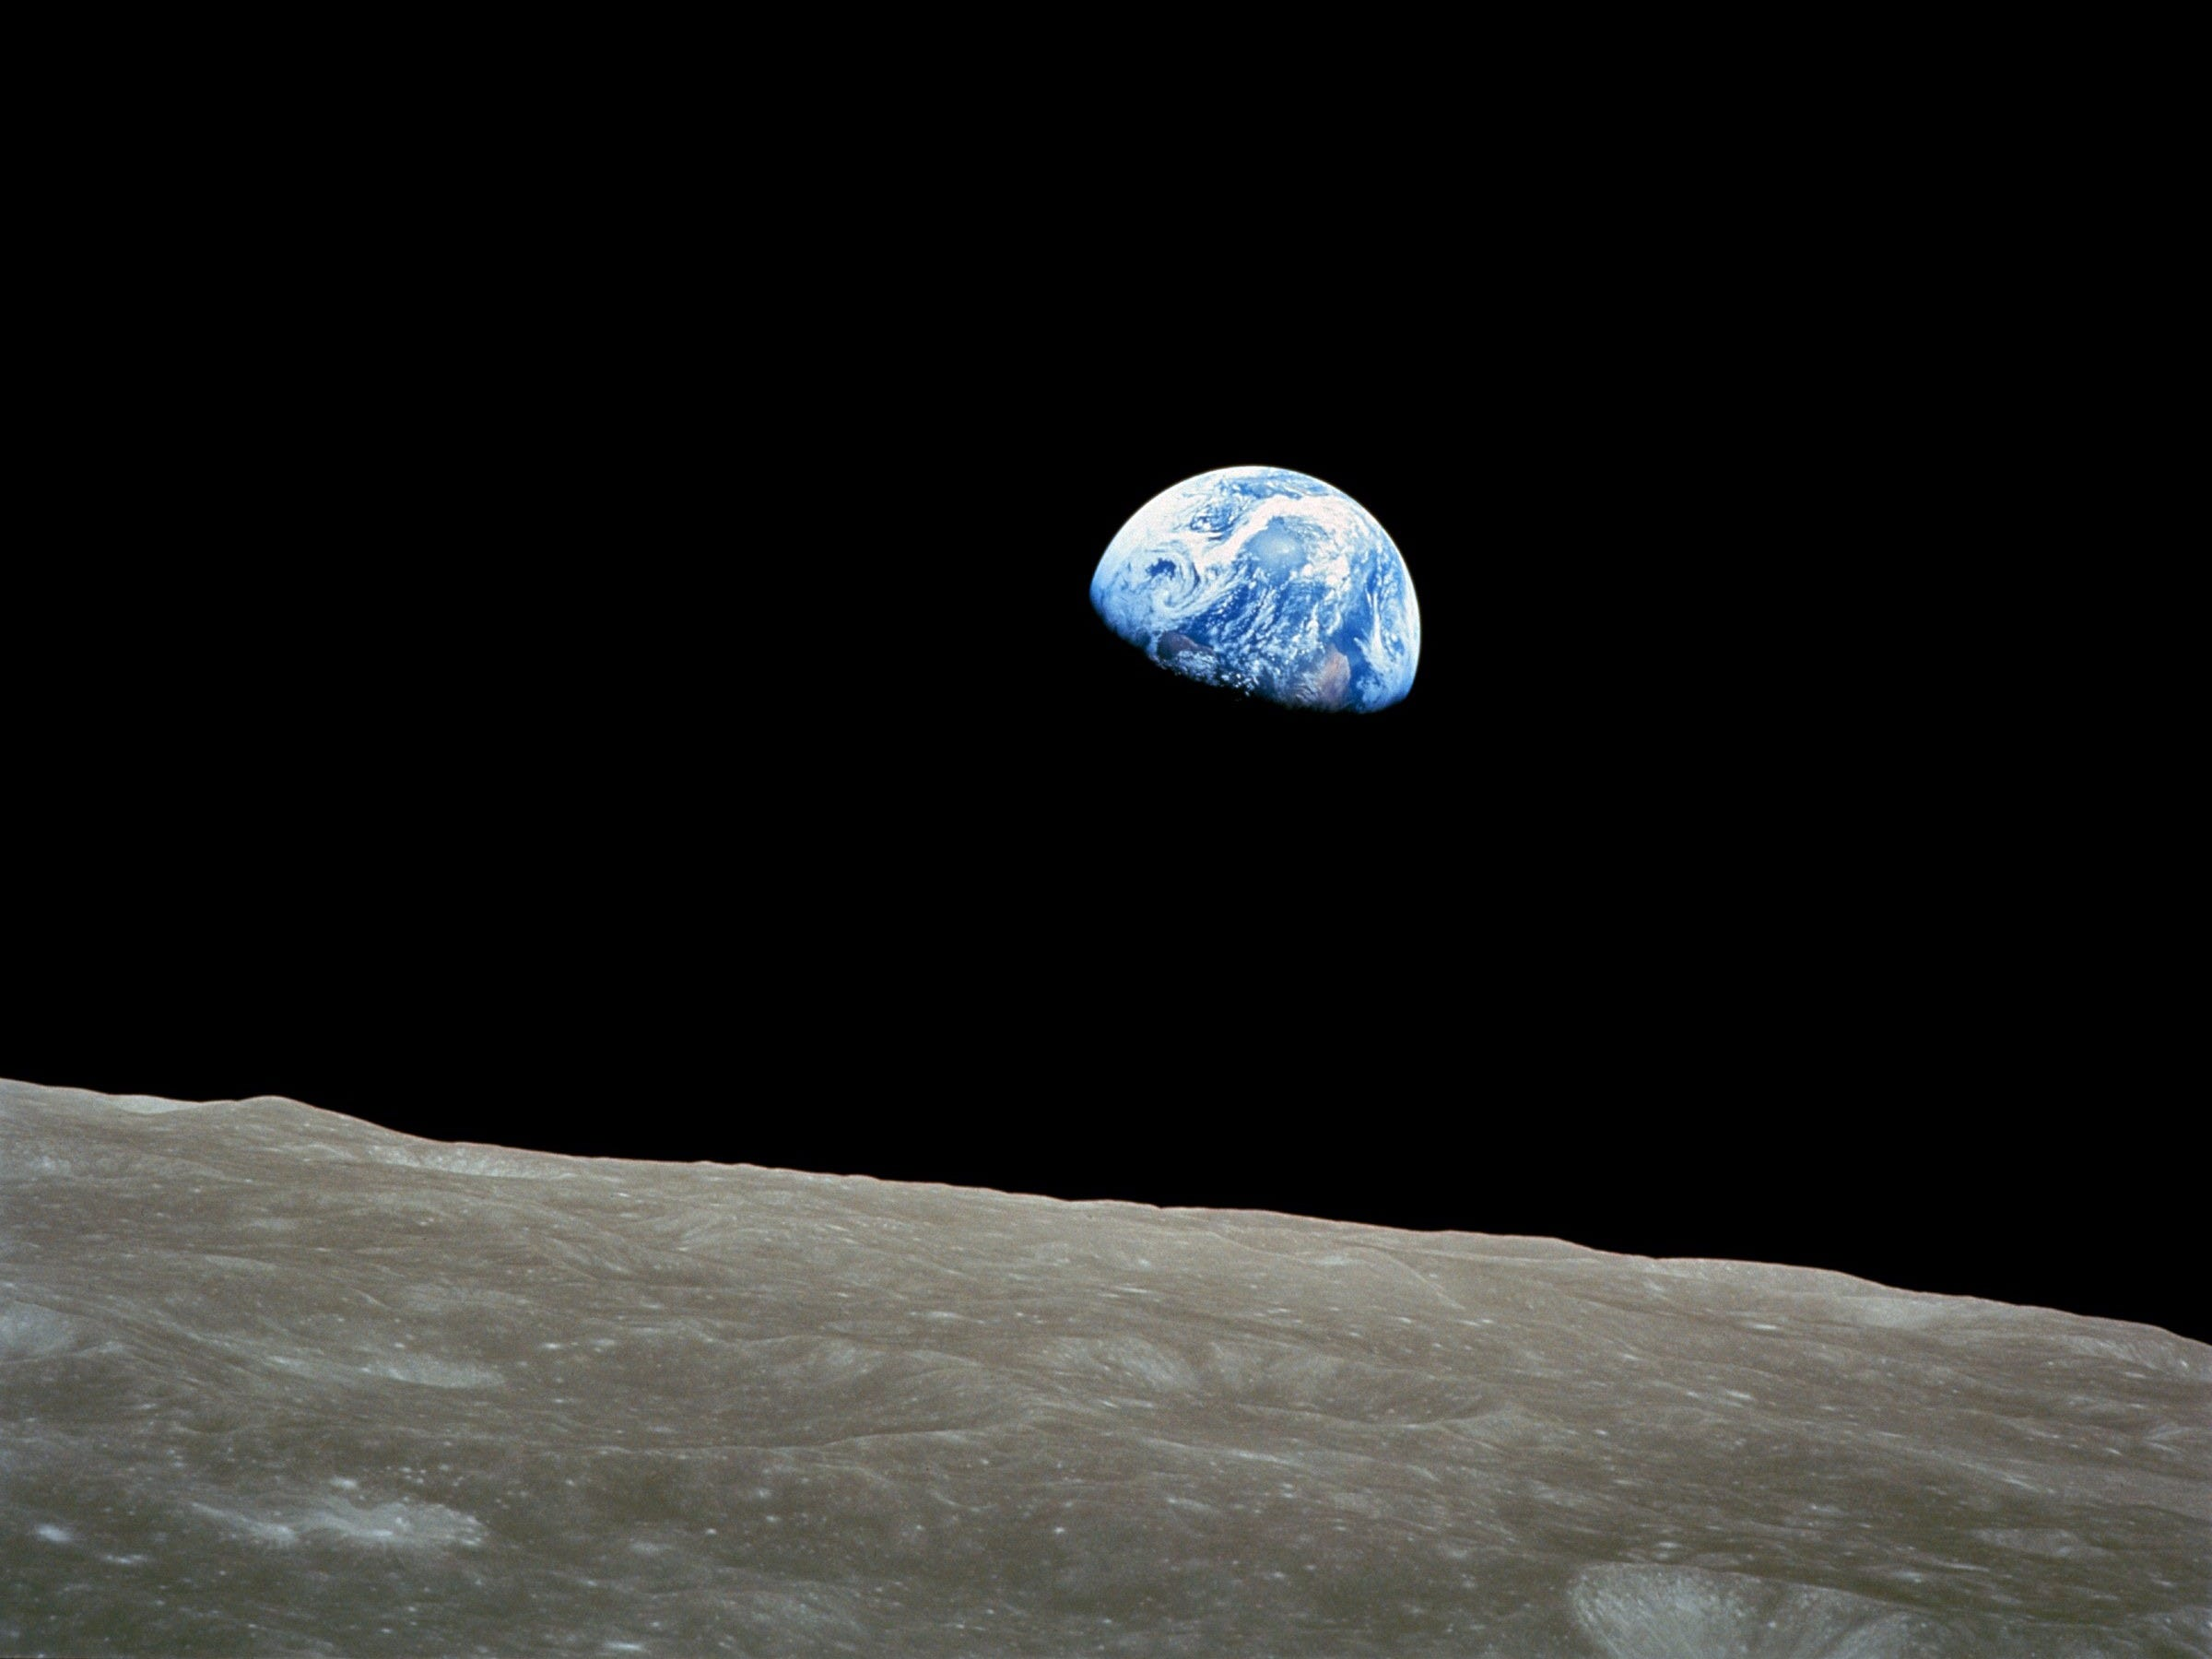 Áudio da missão Apollo 10. One-of-the-most-amazing-sights-from-the-historic-apollo-10-mission-wasnt-the-moon